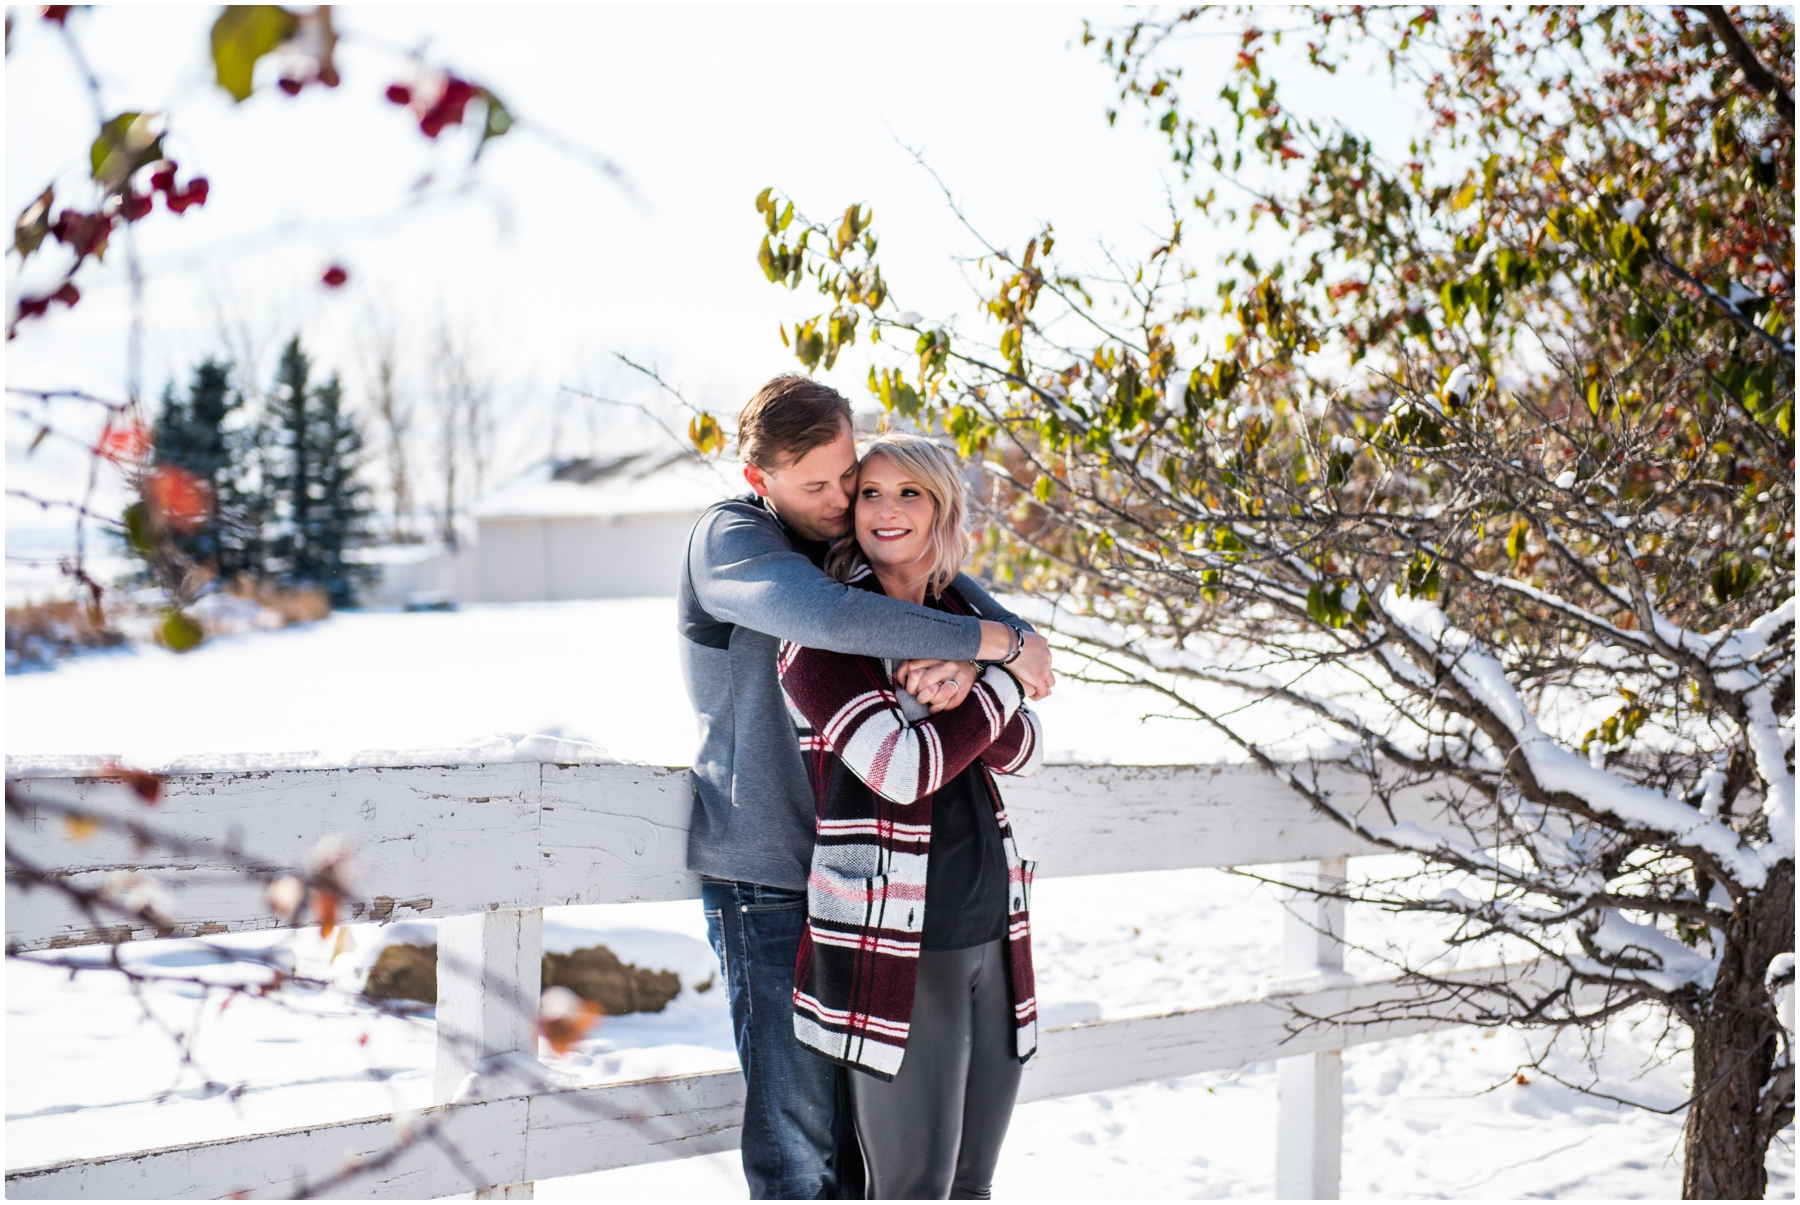 Calgary Pregnancy Announcement Photography - Calgary Maternity Photographers